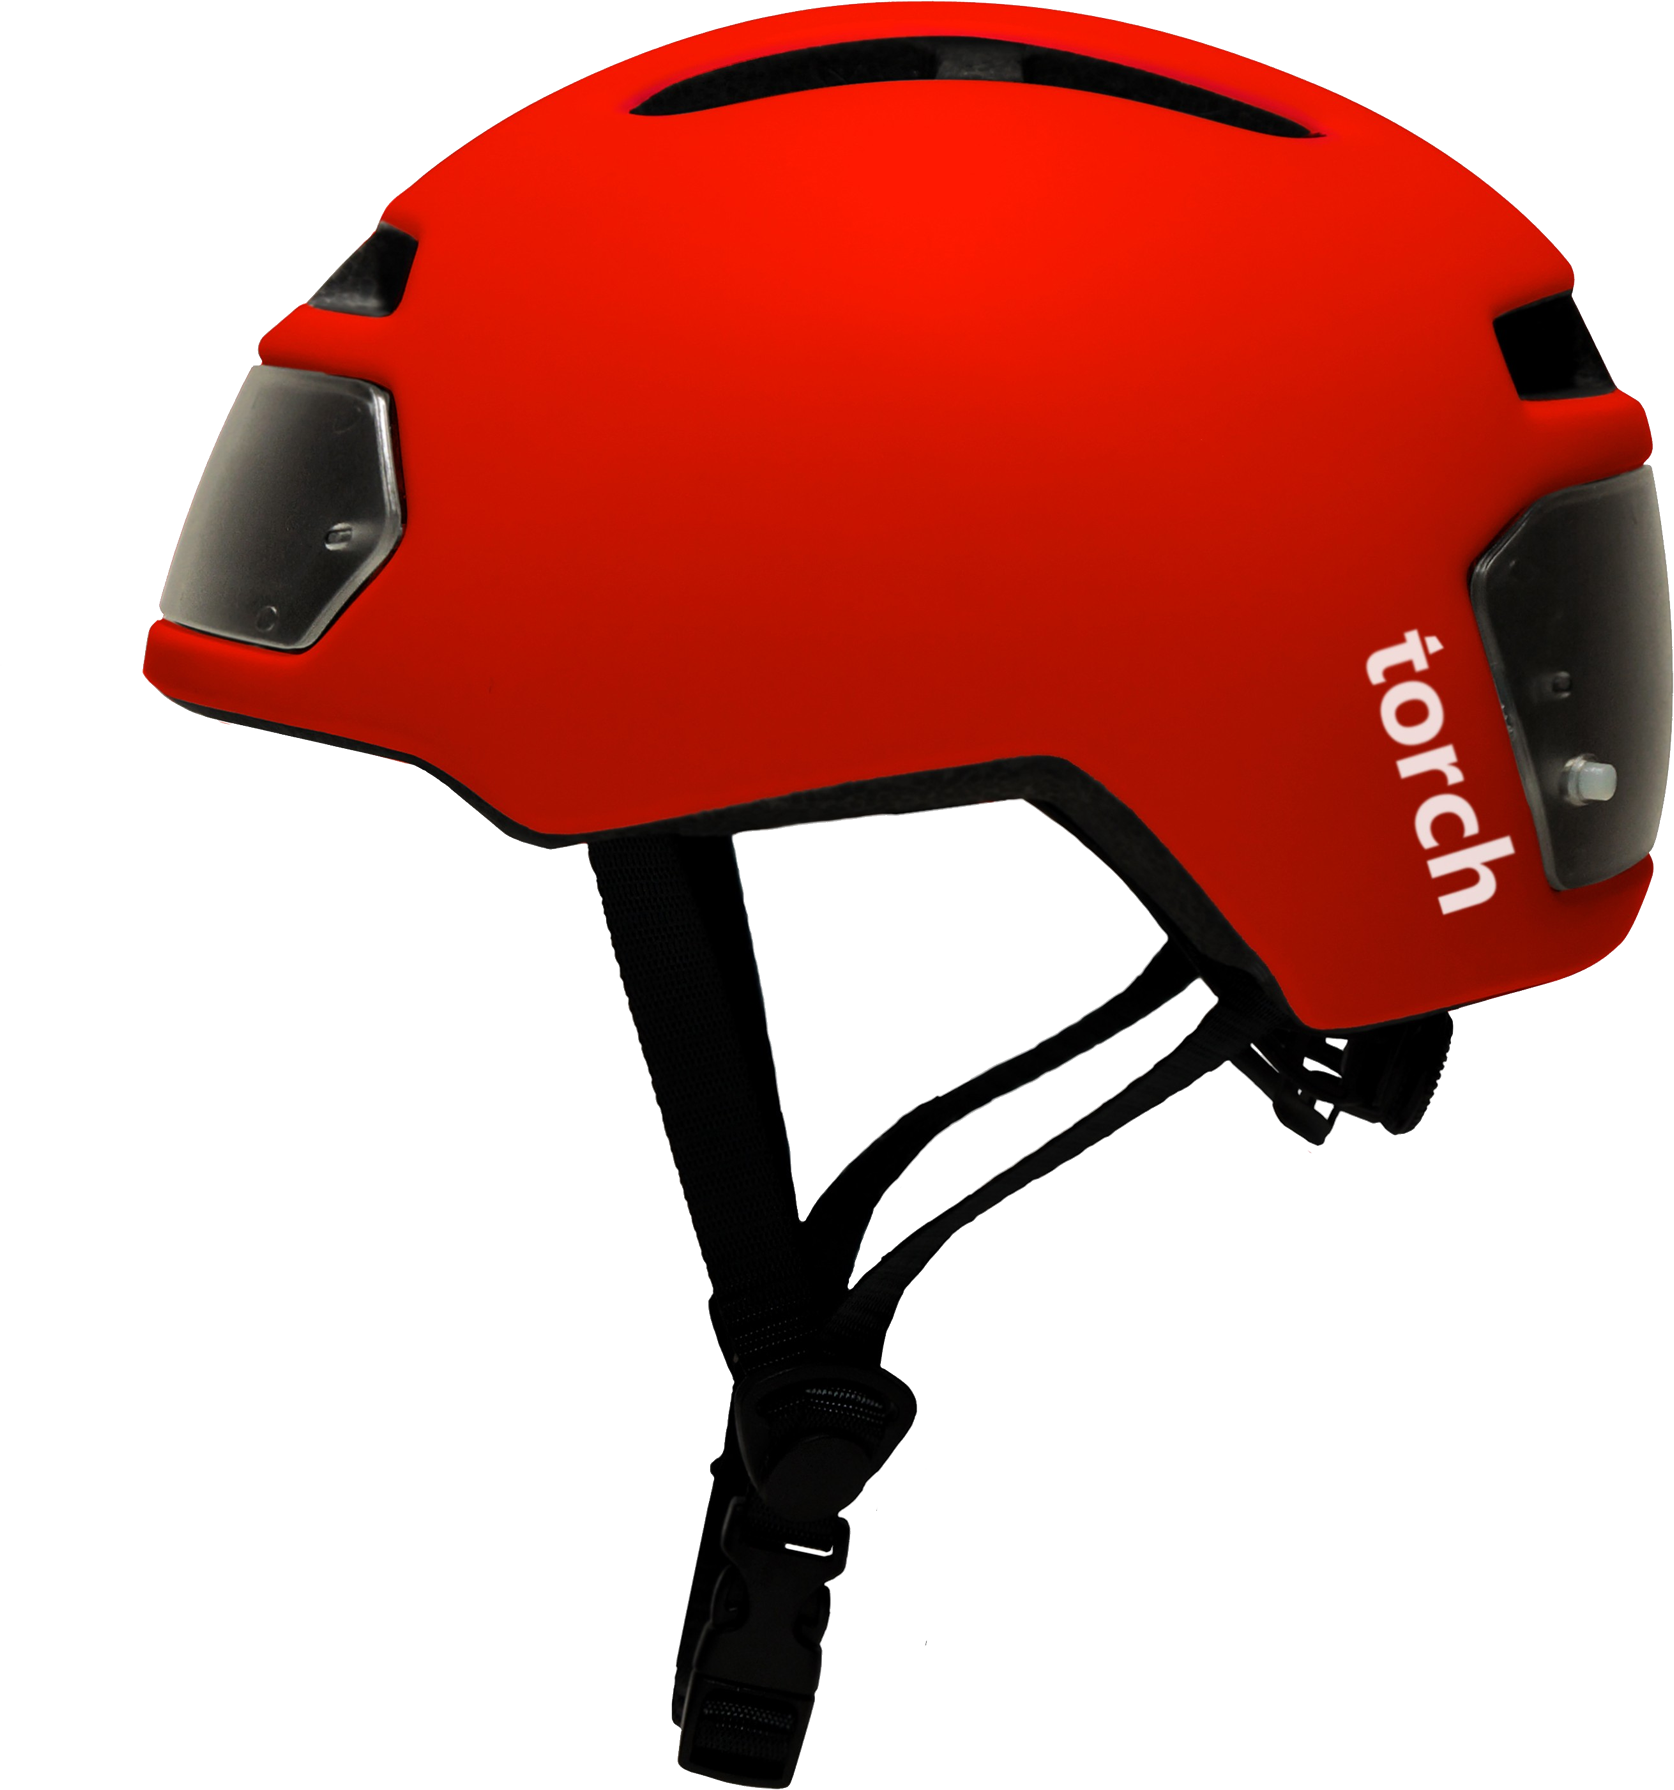 Bike helmet clipart transparent background picture black and white download Bicycle Helmet PNG Image - PurePNG | Free transparent CC0 PNG Image ... picture black and white download